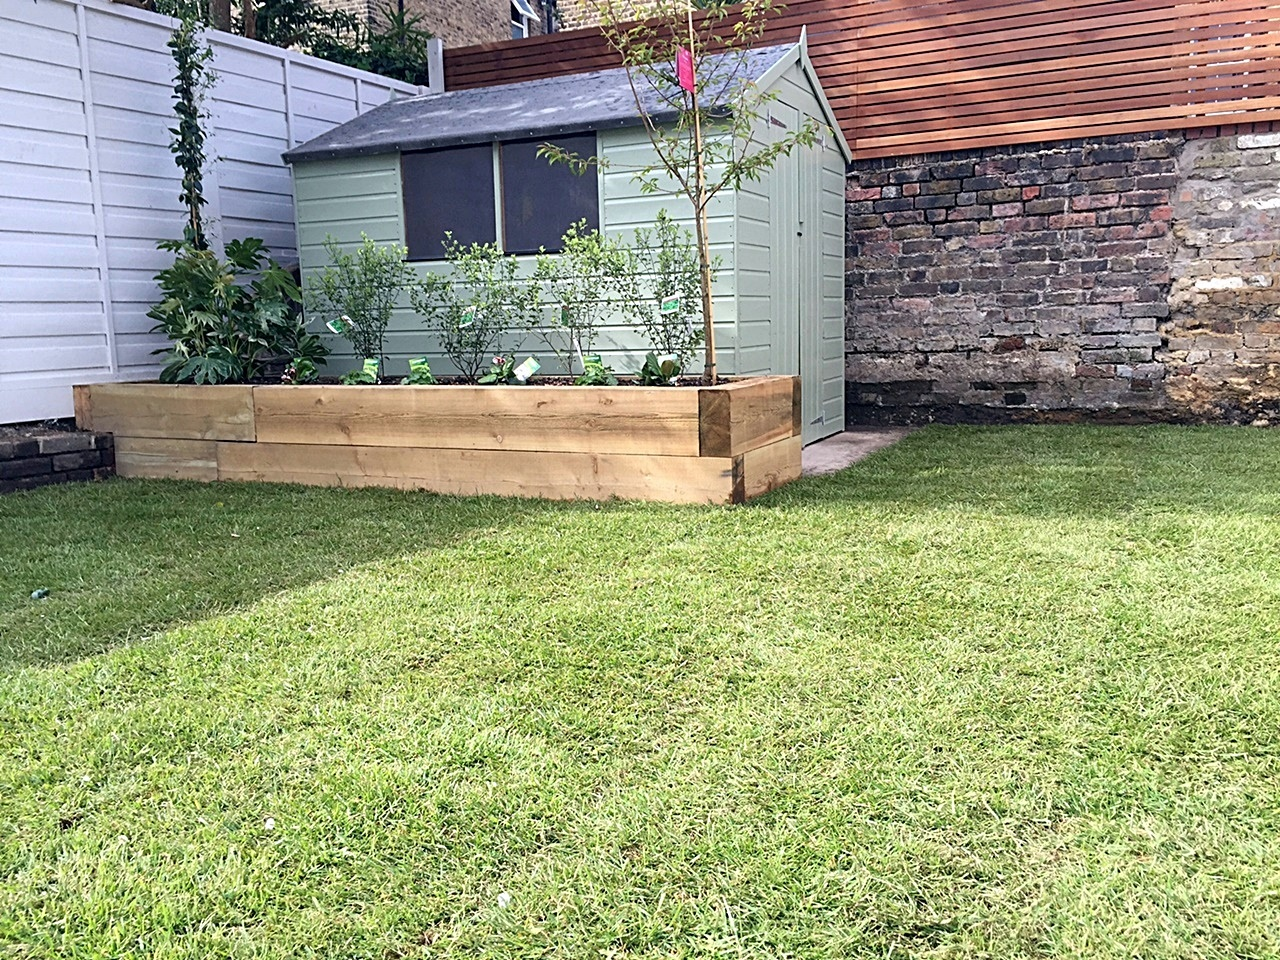 Low maintenance shed planting real grass hardwood screen privacy London Battersea Wandsworth Earsfield